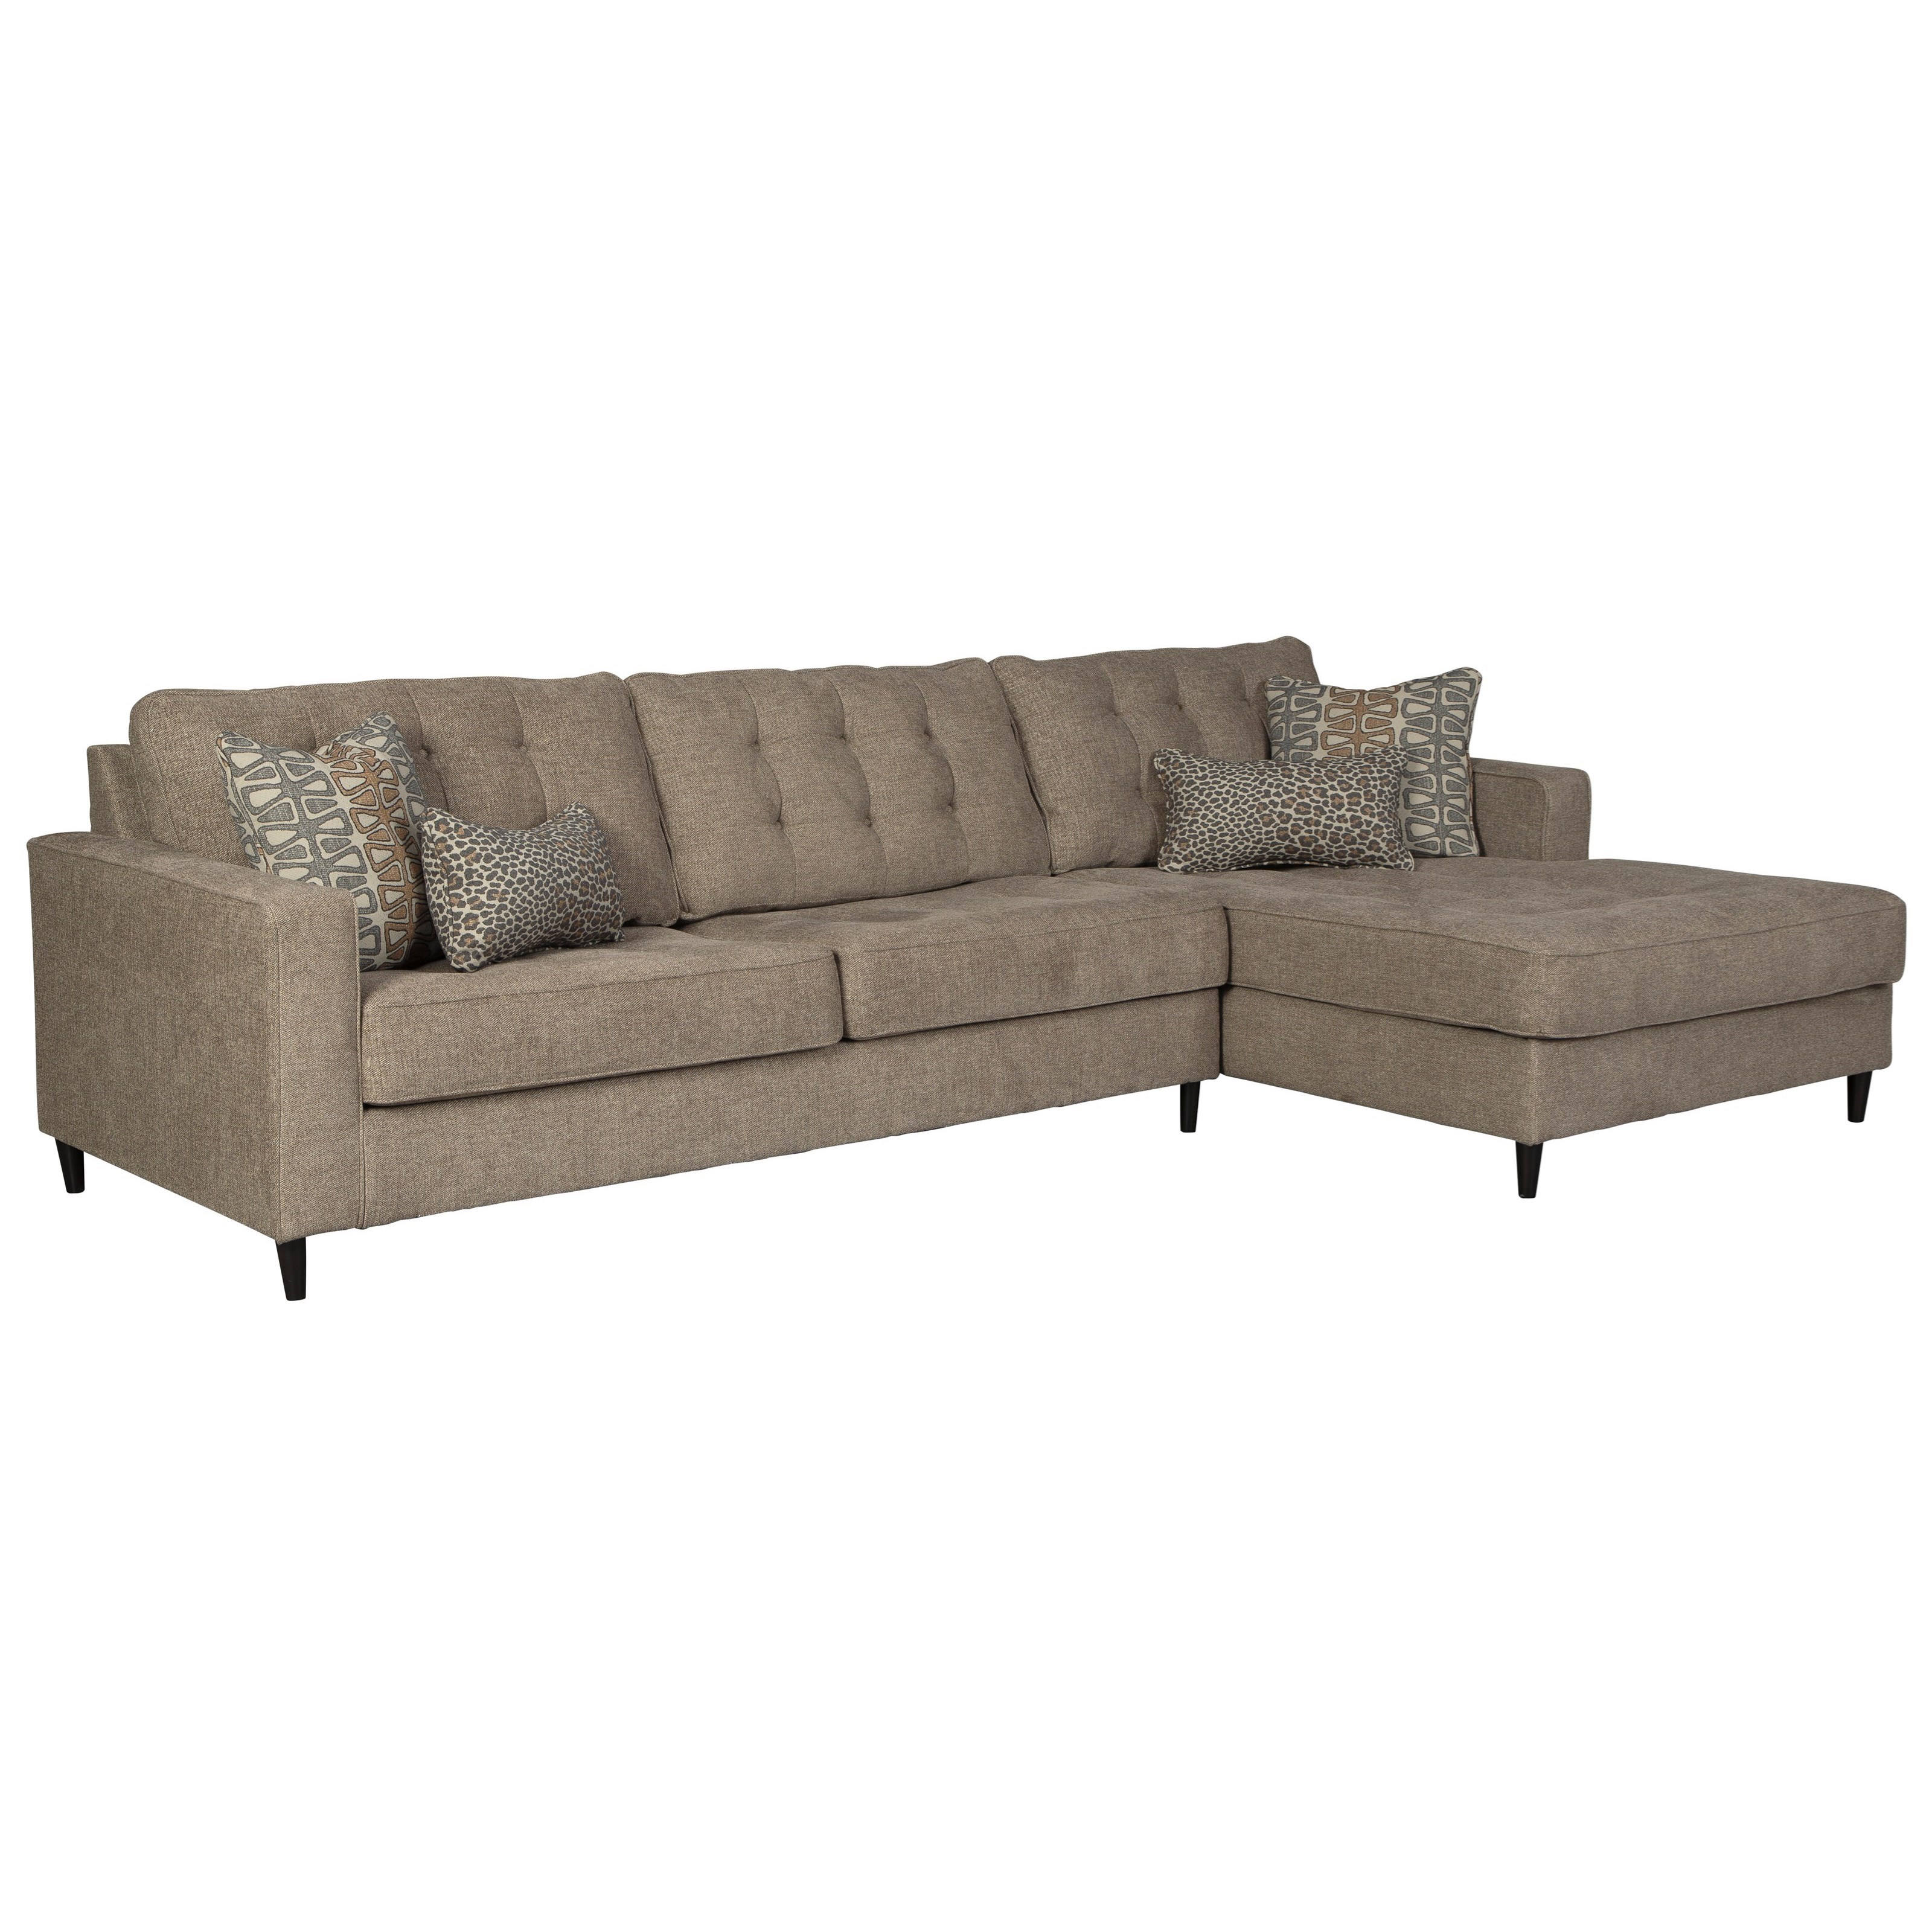 3 Seat Sectional Sofa w/ RAF Chaise